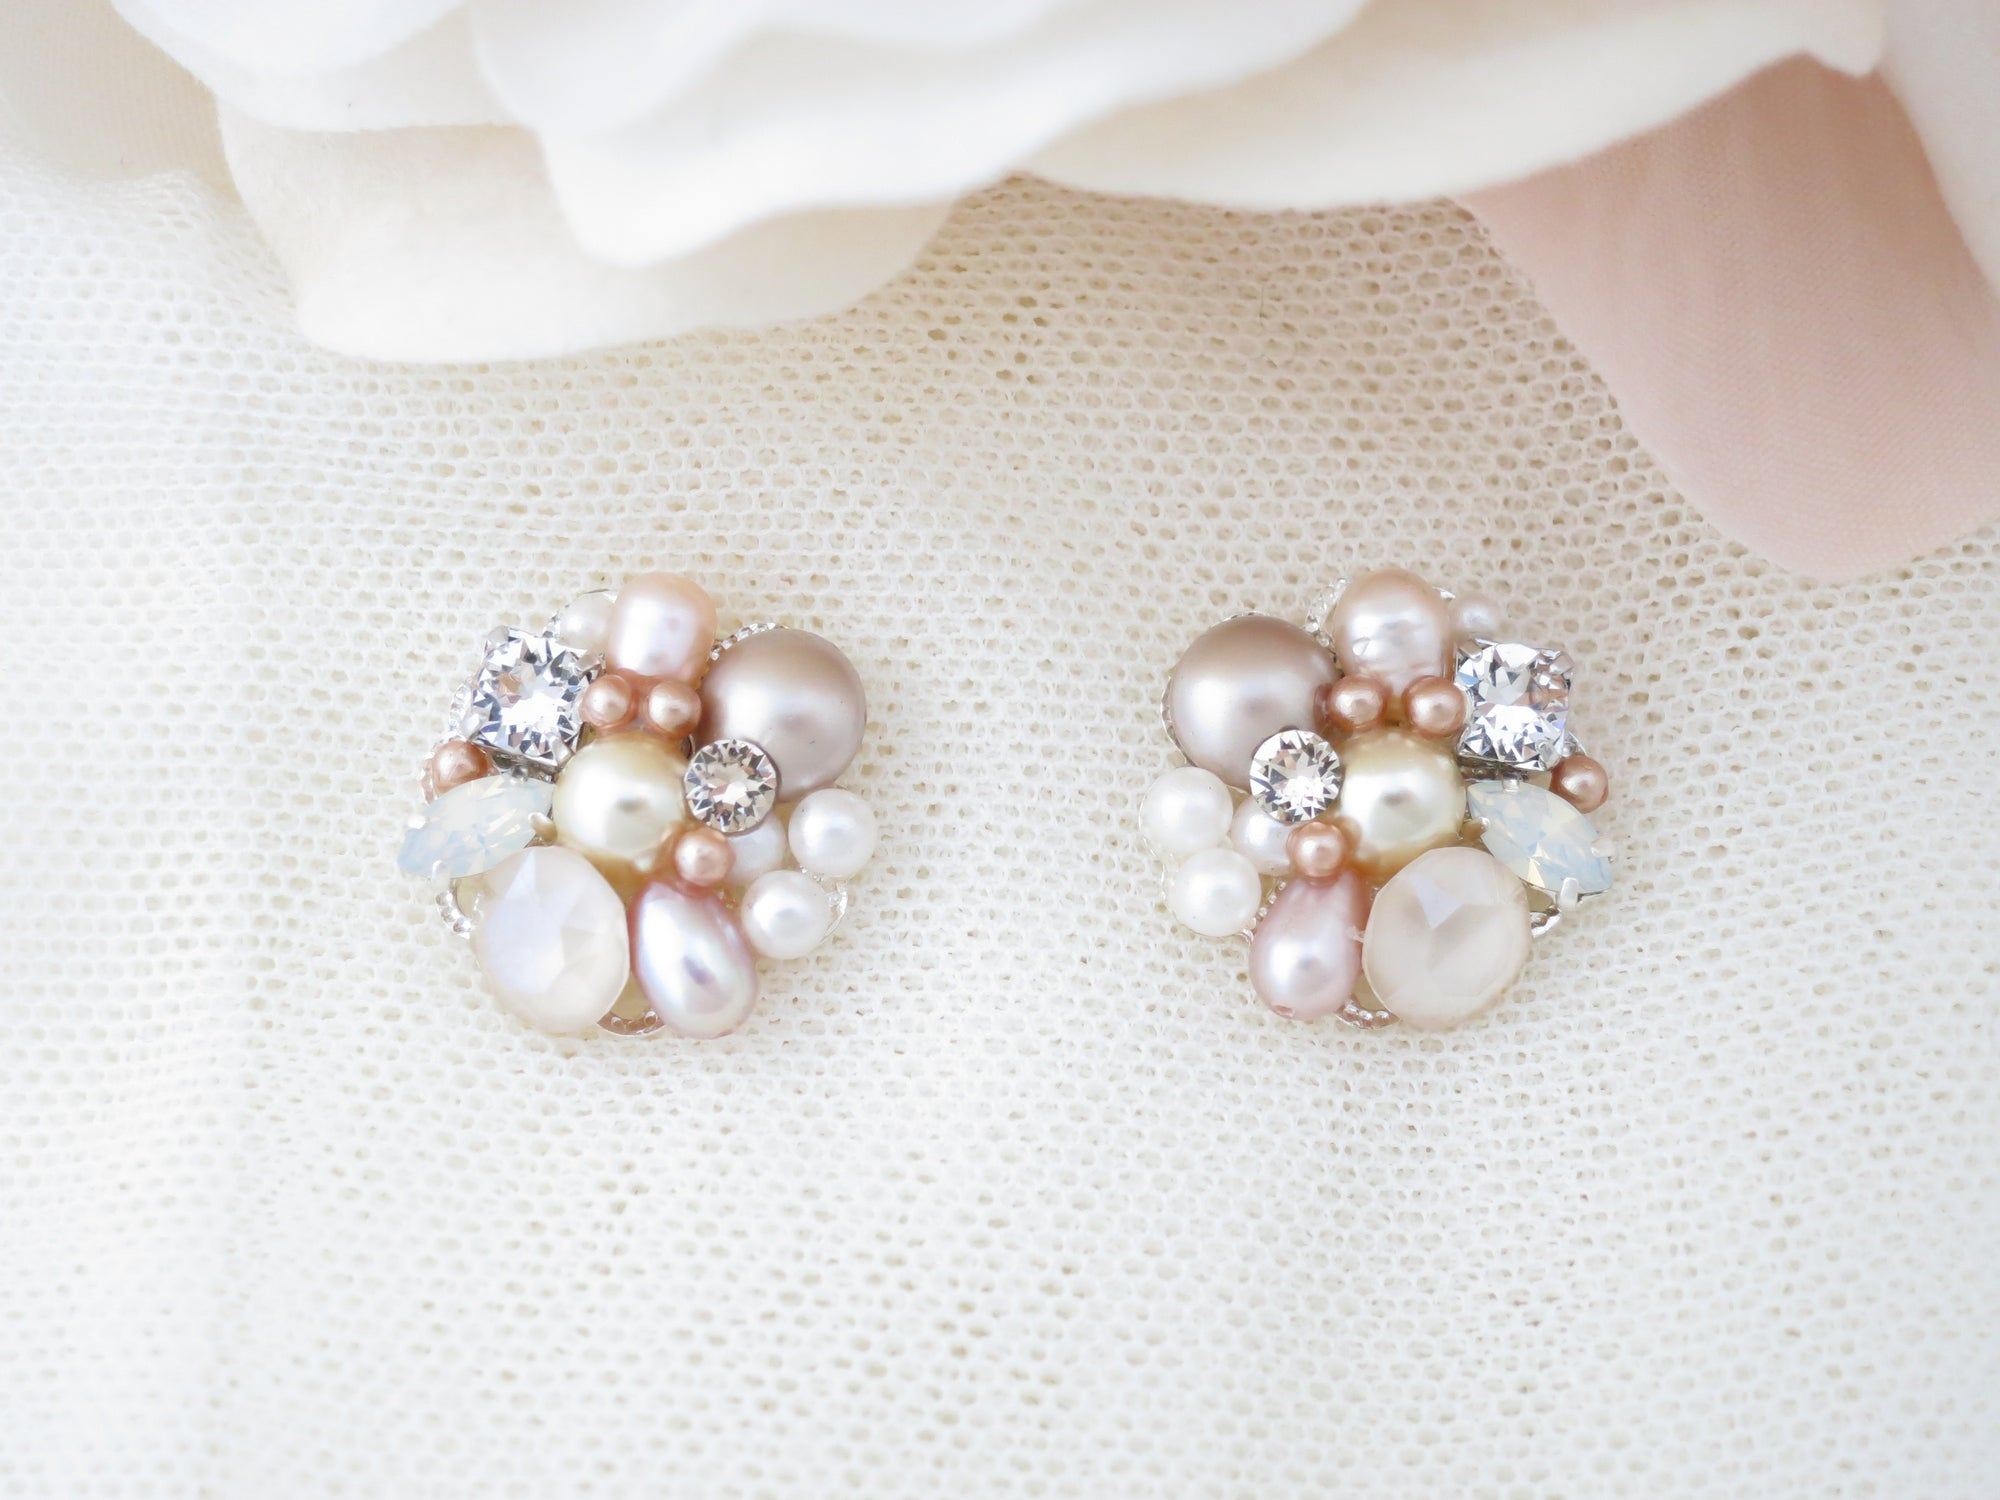 TRIS:  Blush Pearl Bridal Earrings - BlingBaddaBoom - Minimalist, Vintage, Modern Wedding and Bridal Jewelry